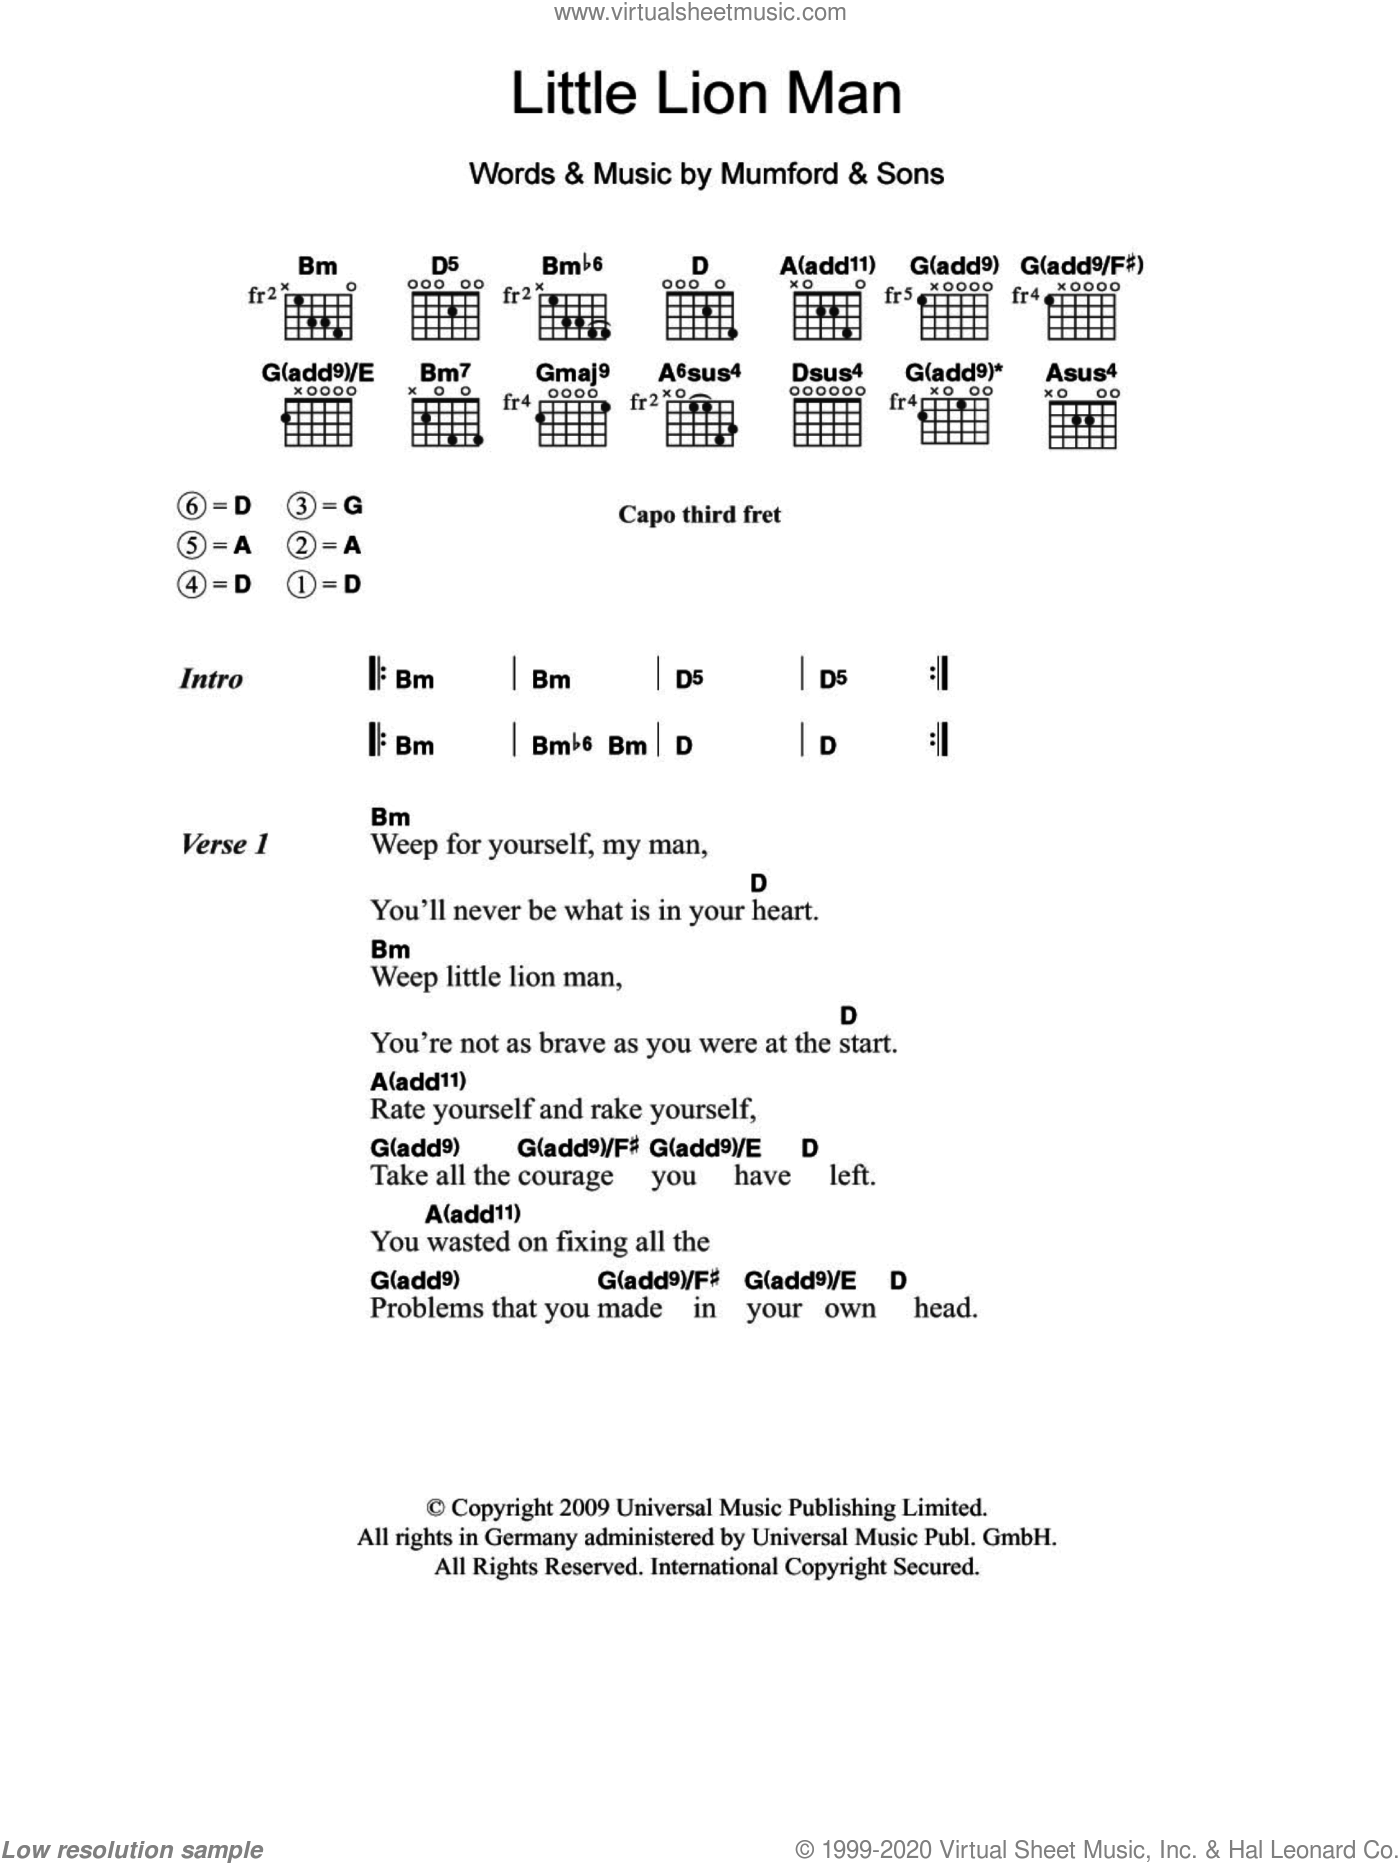 Little Lion Man sheet music for guitar (chords) by Mumford & Sons, intermediate skill level